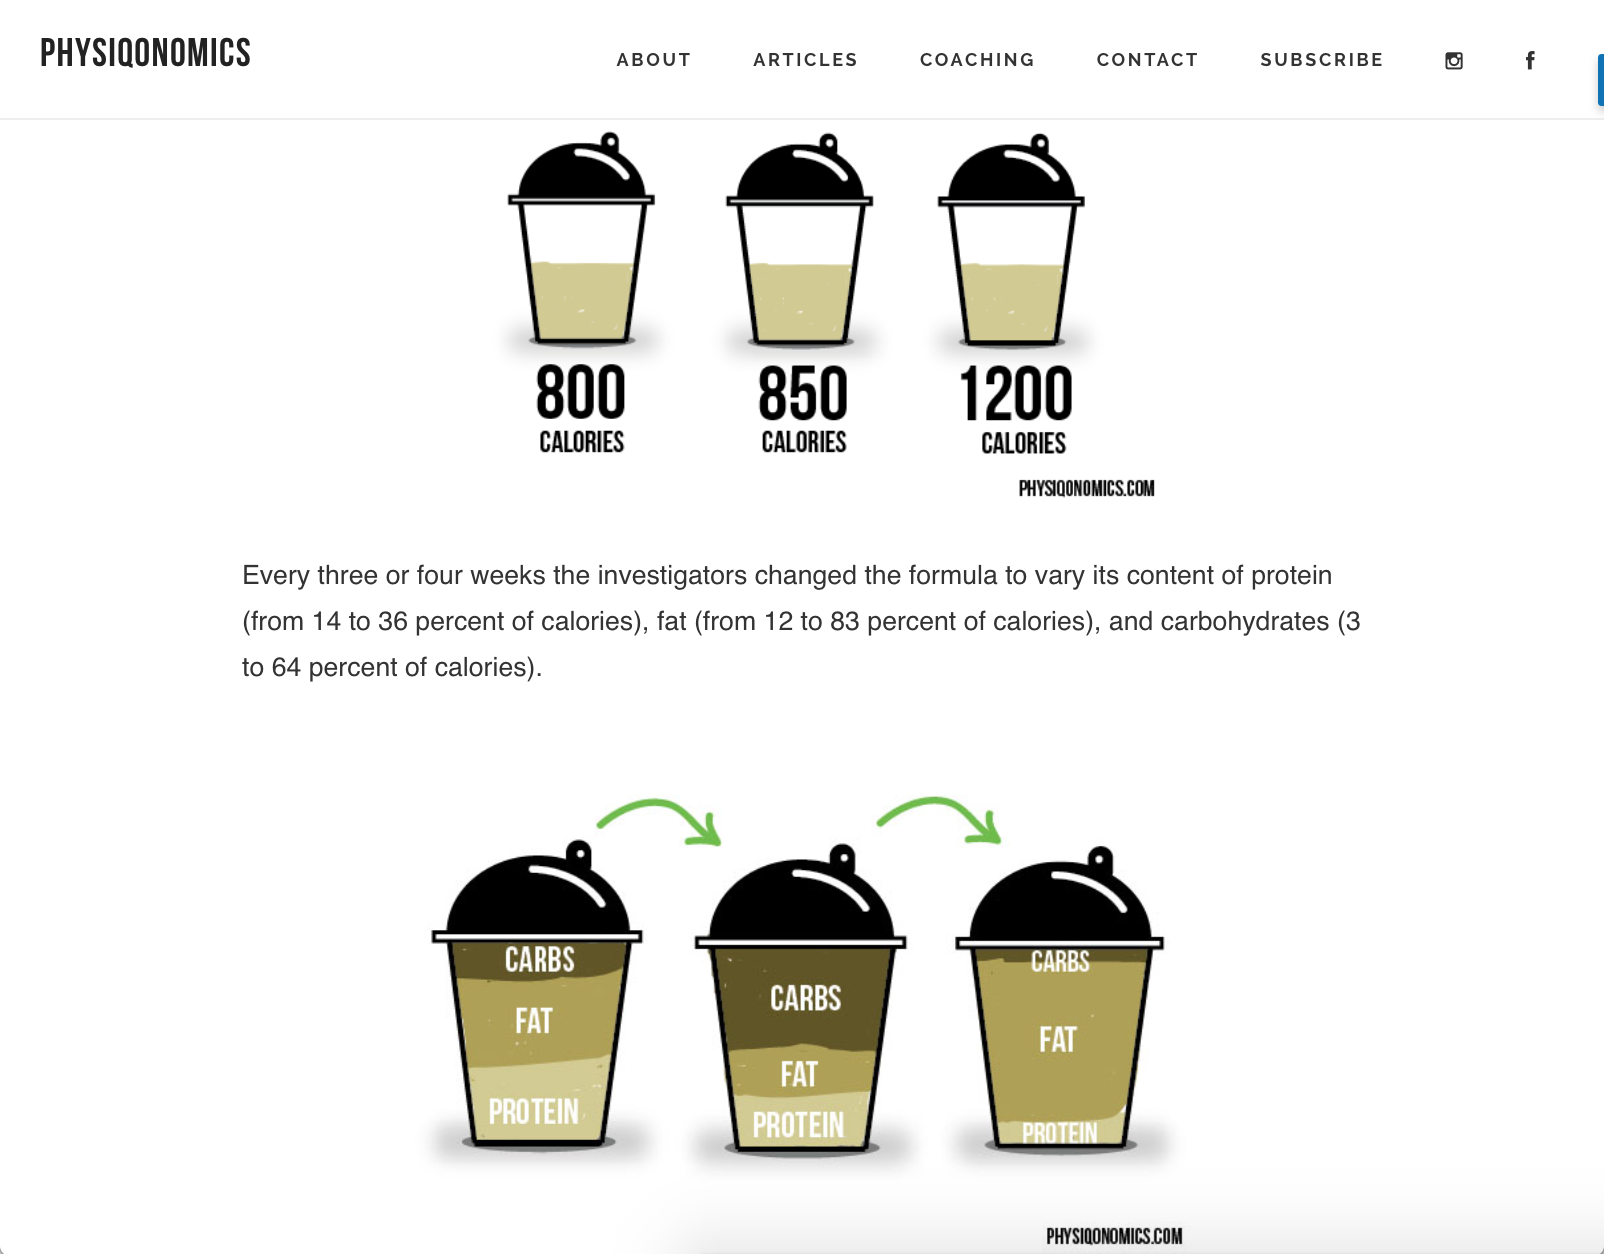 Screenshot showing a webpage about drinks